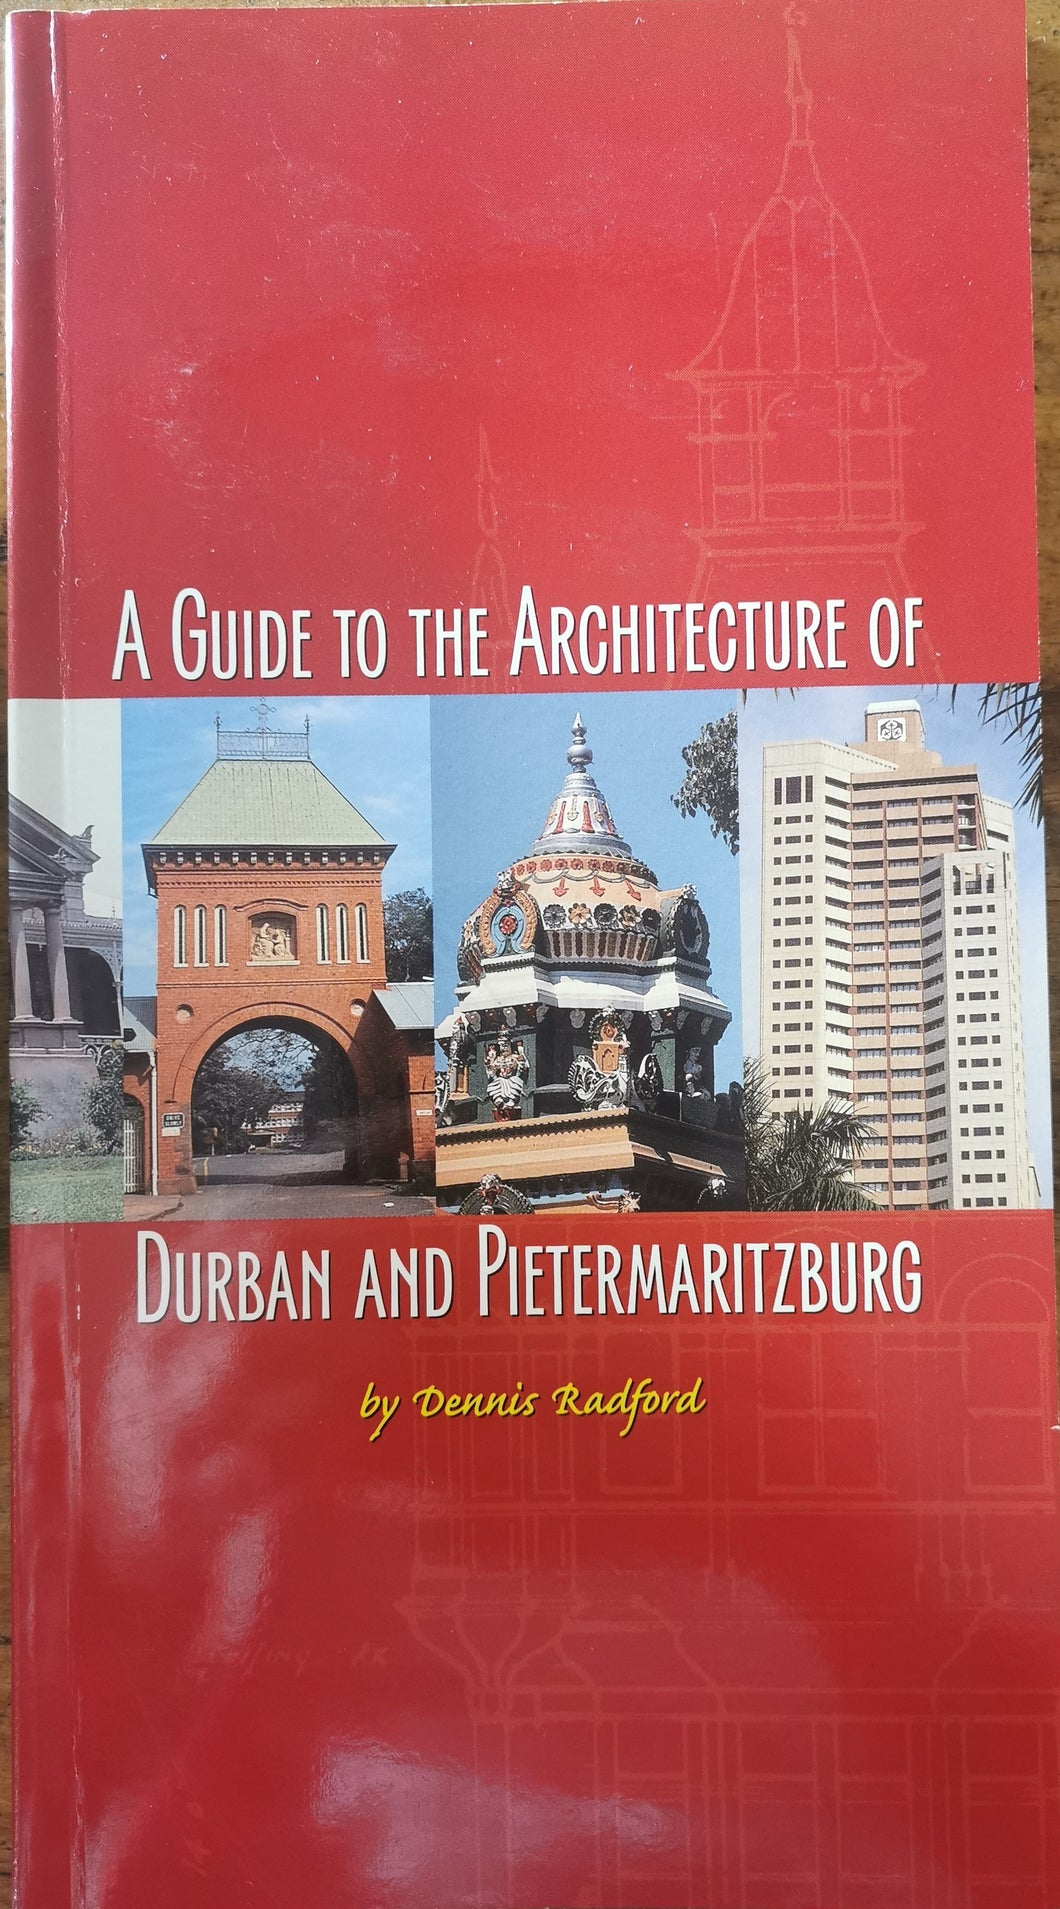 A Guide to the Architecture of Durban and Pietermaritzburg - Dennis Radford